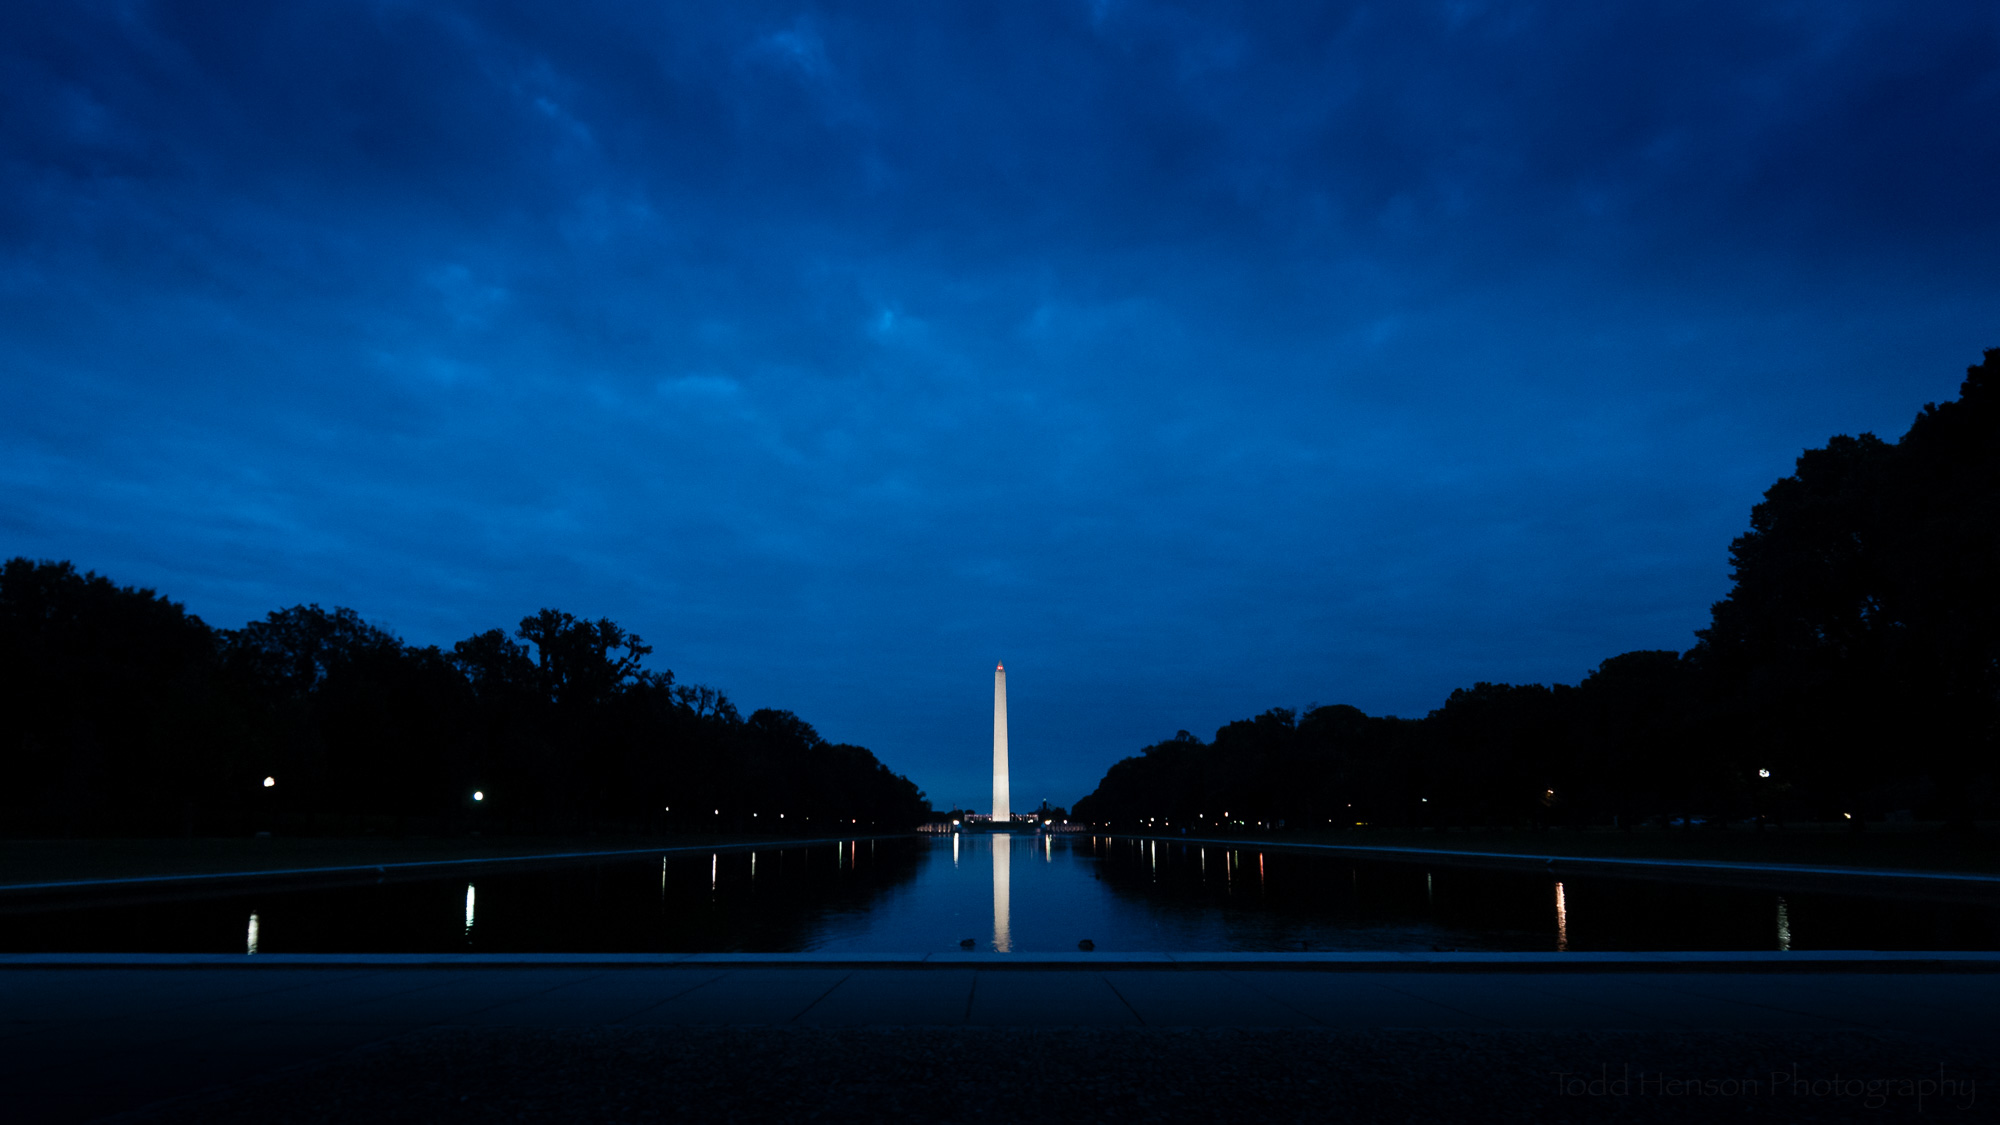 Low angle view of the Washington Monument and the Reflecting Pool during the blue hour before sunrise.